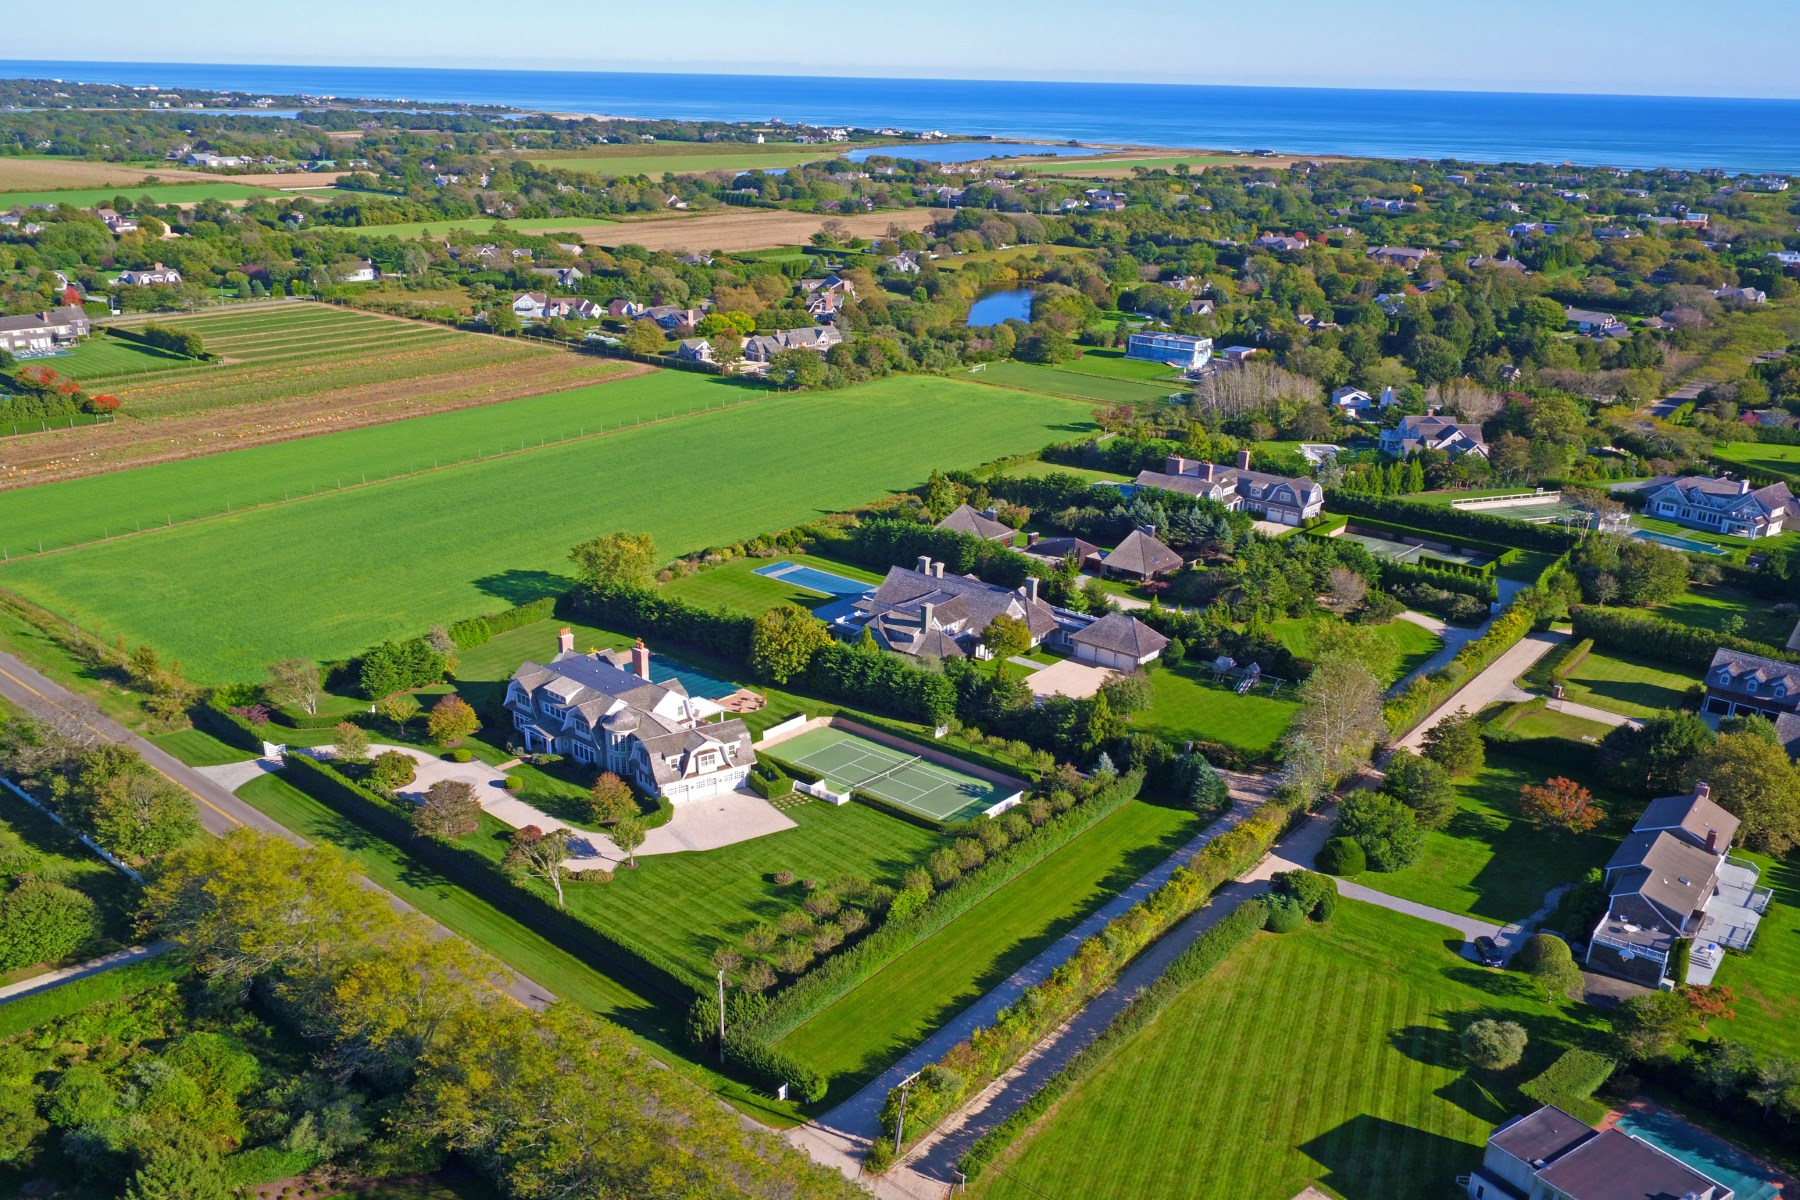 Moradia para Venda às Sagaponack Near Ocean With Tennis 515 Parsonage Lane, Sagaponack, Nova York, 11962 Estados Unidos